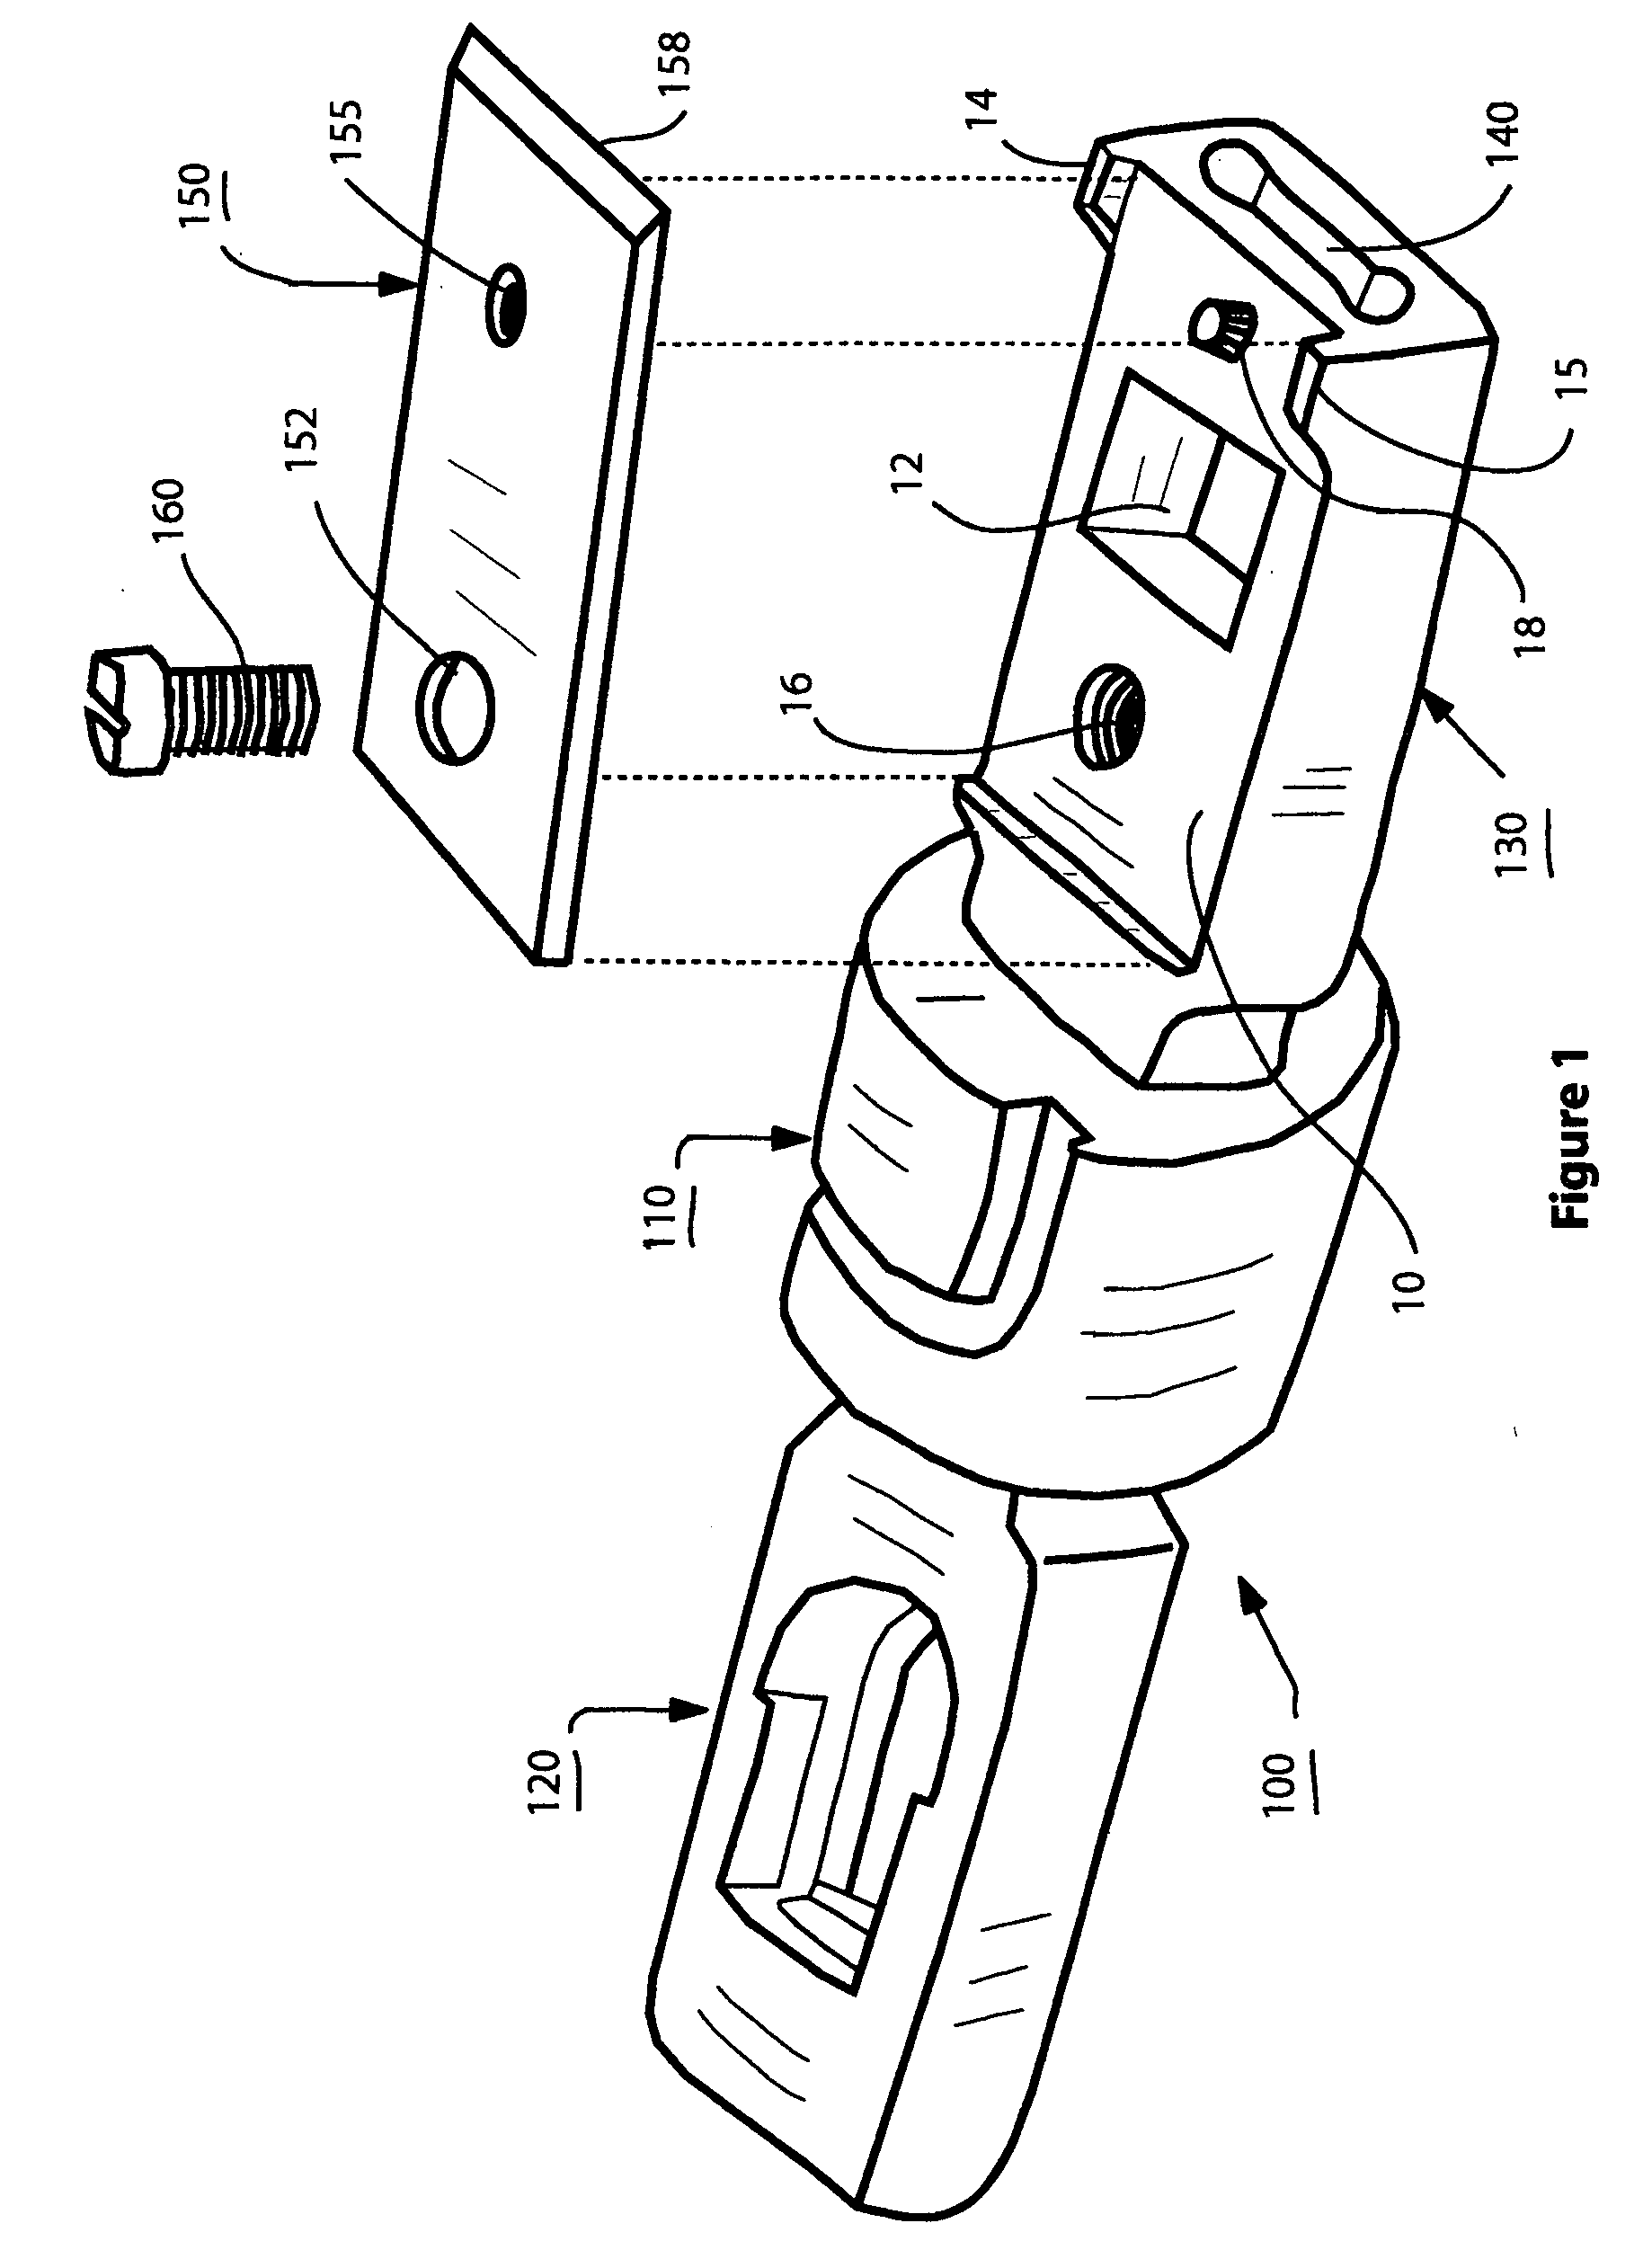 patent us20060242840 wire end insert 66 tool with replaceable Punch Down Block Wiring patent drawing